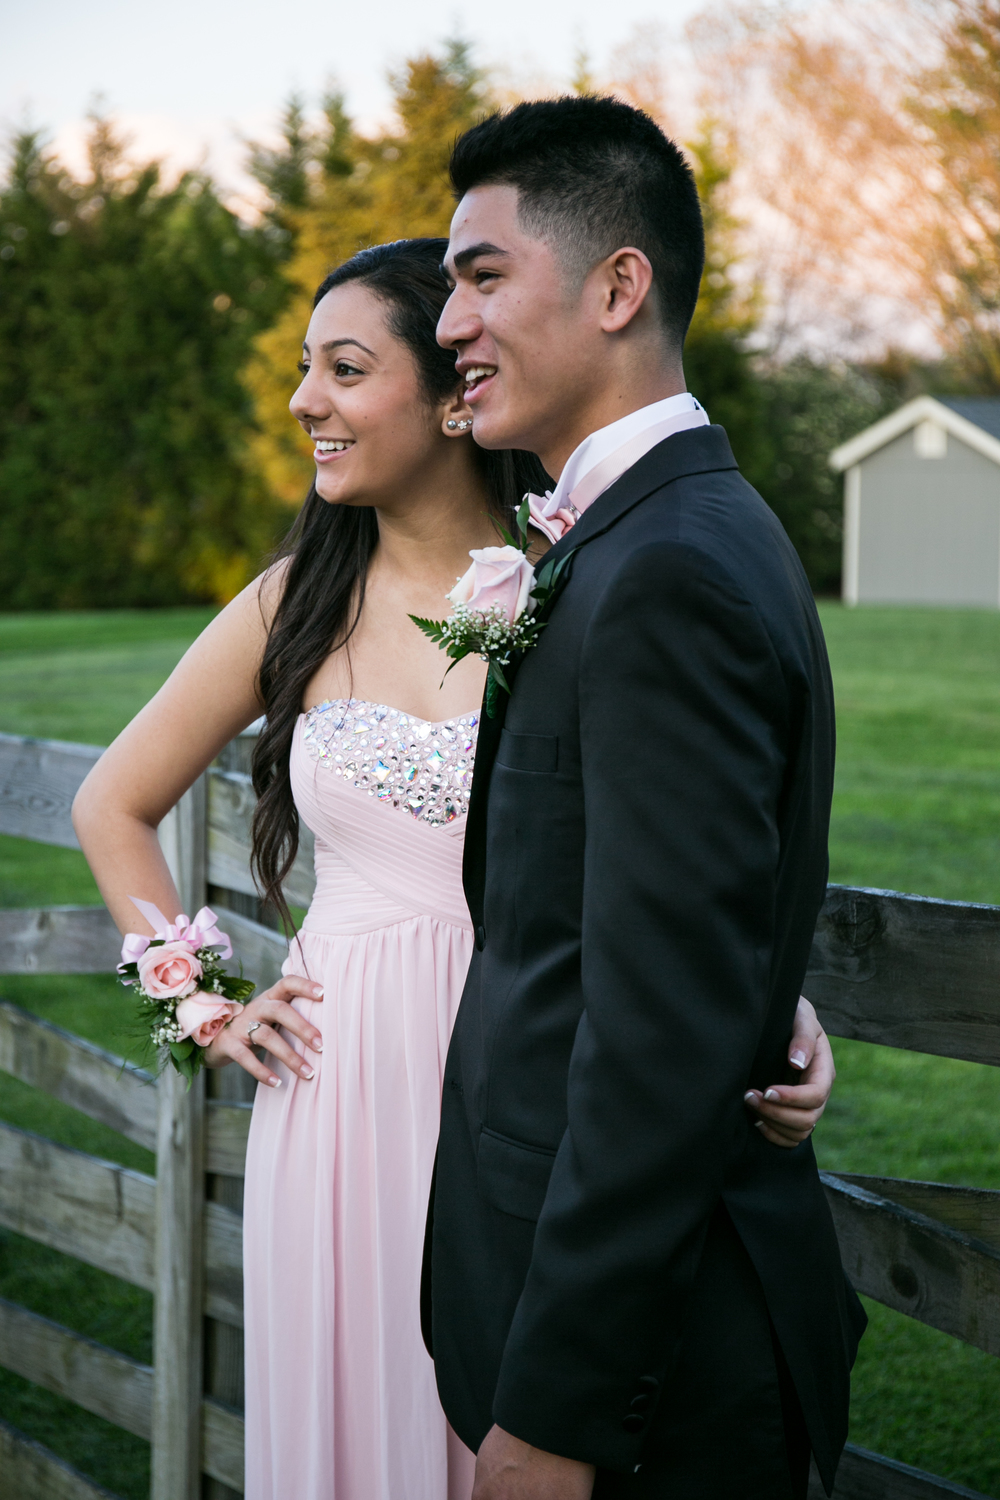 Mount-De-Sales-Pre-Prom-May-2014-149.jpg